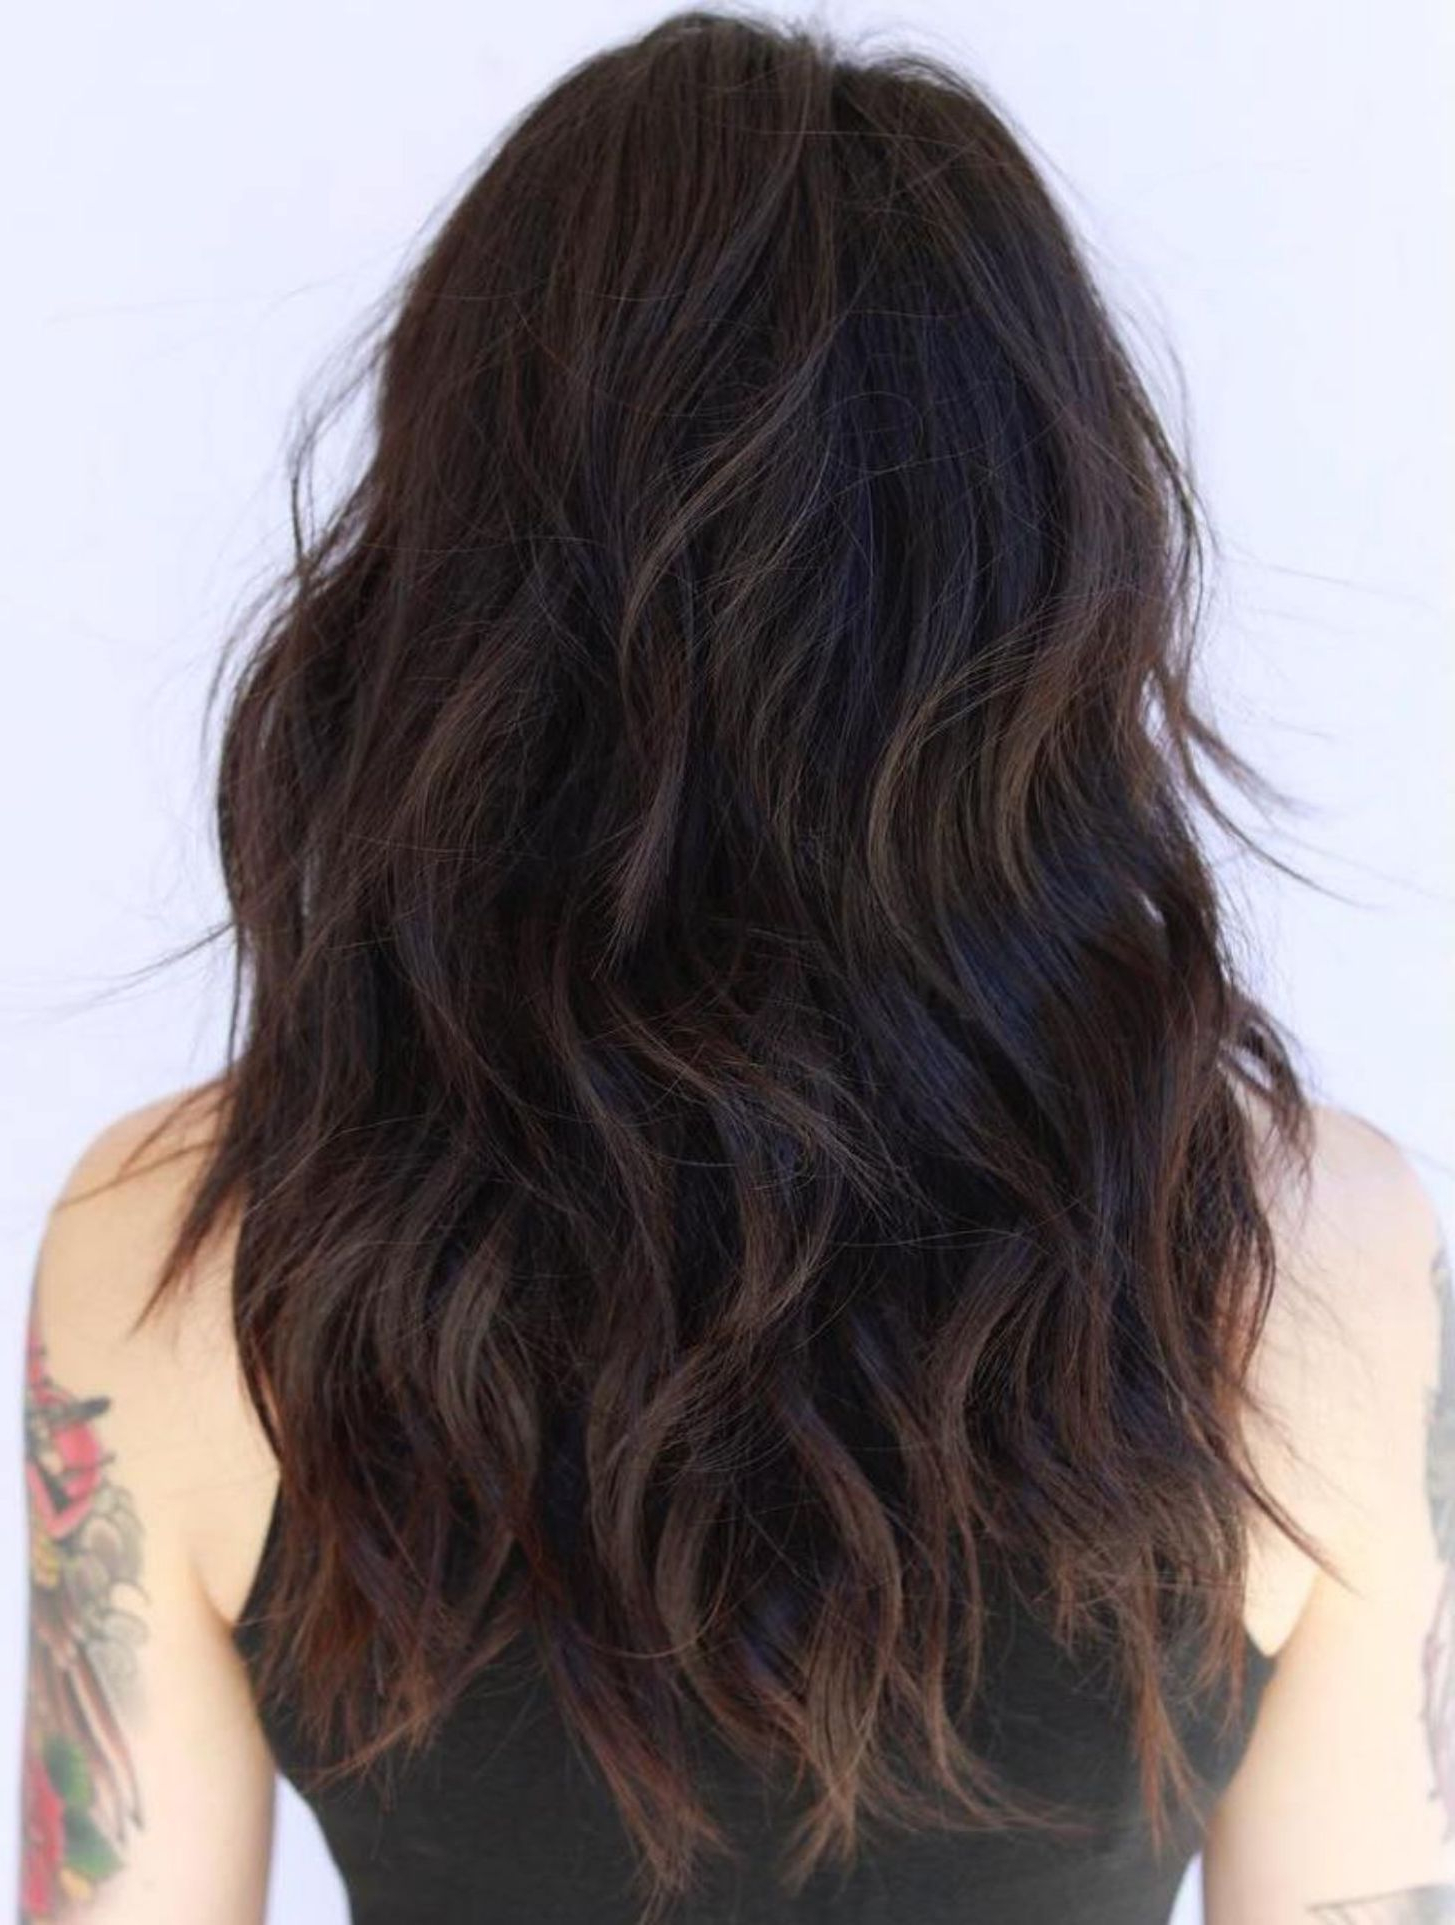 50 Lovely Long Shag Haircuts For Effortless Stylish Looks In 2019 Within Fashionable Bedhead Layers For Long Hairstyles (View 7 of 20)